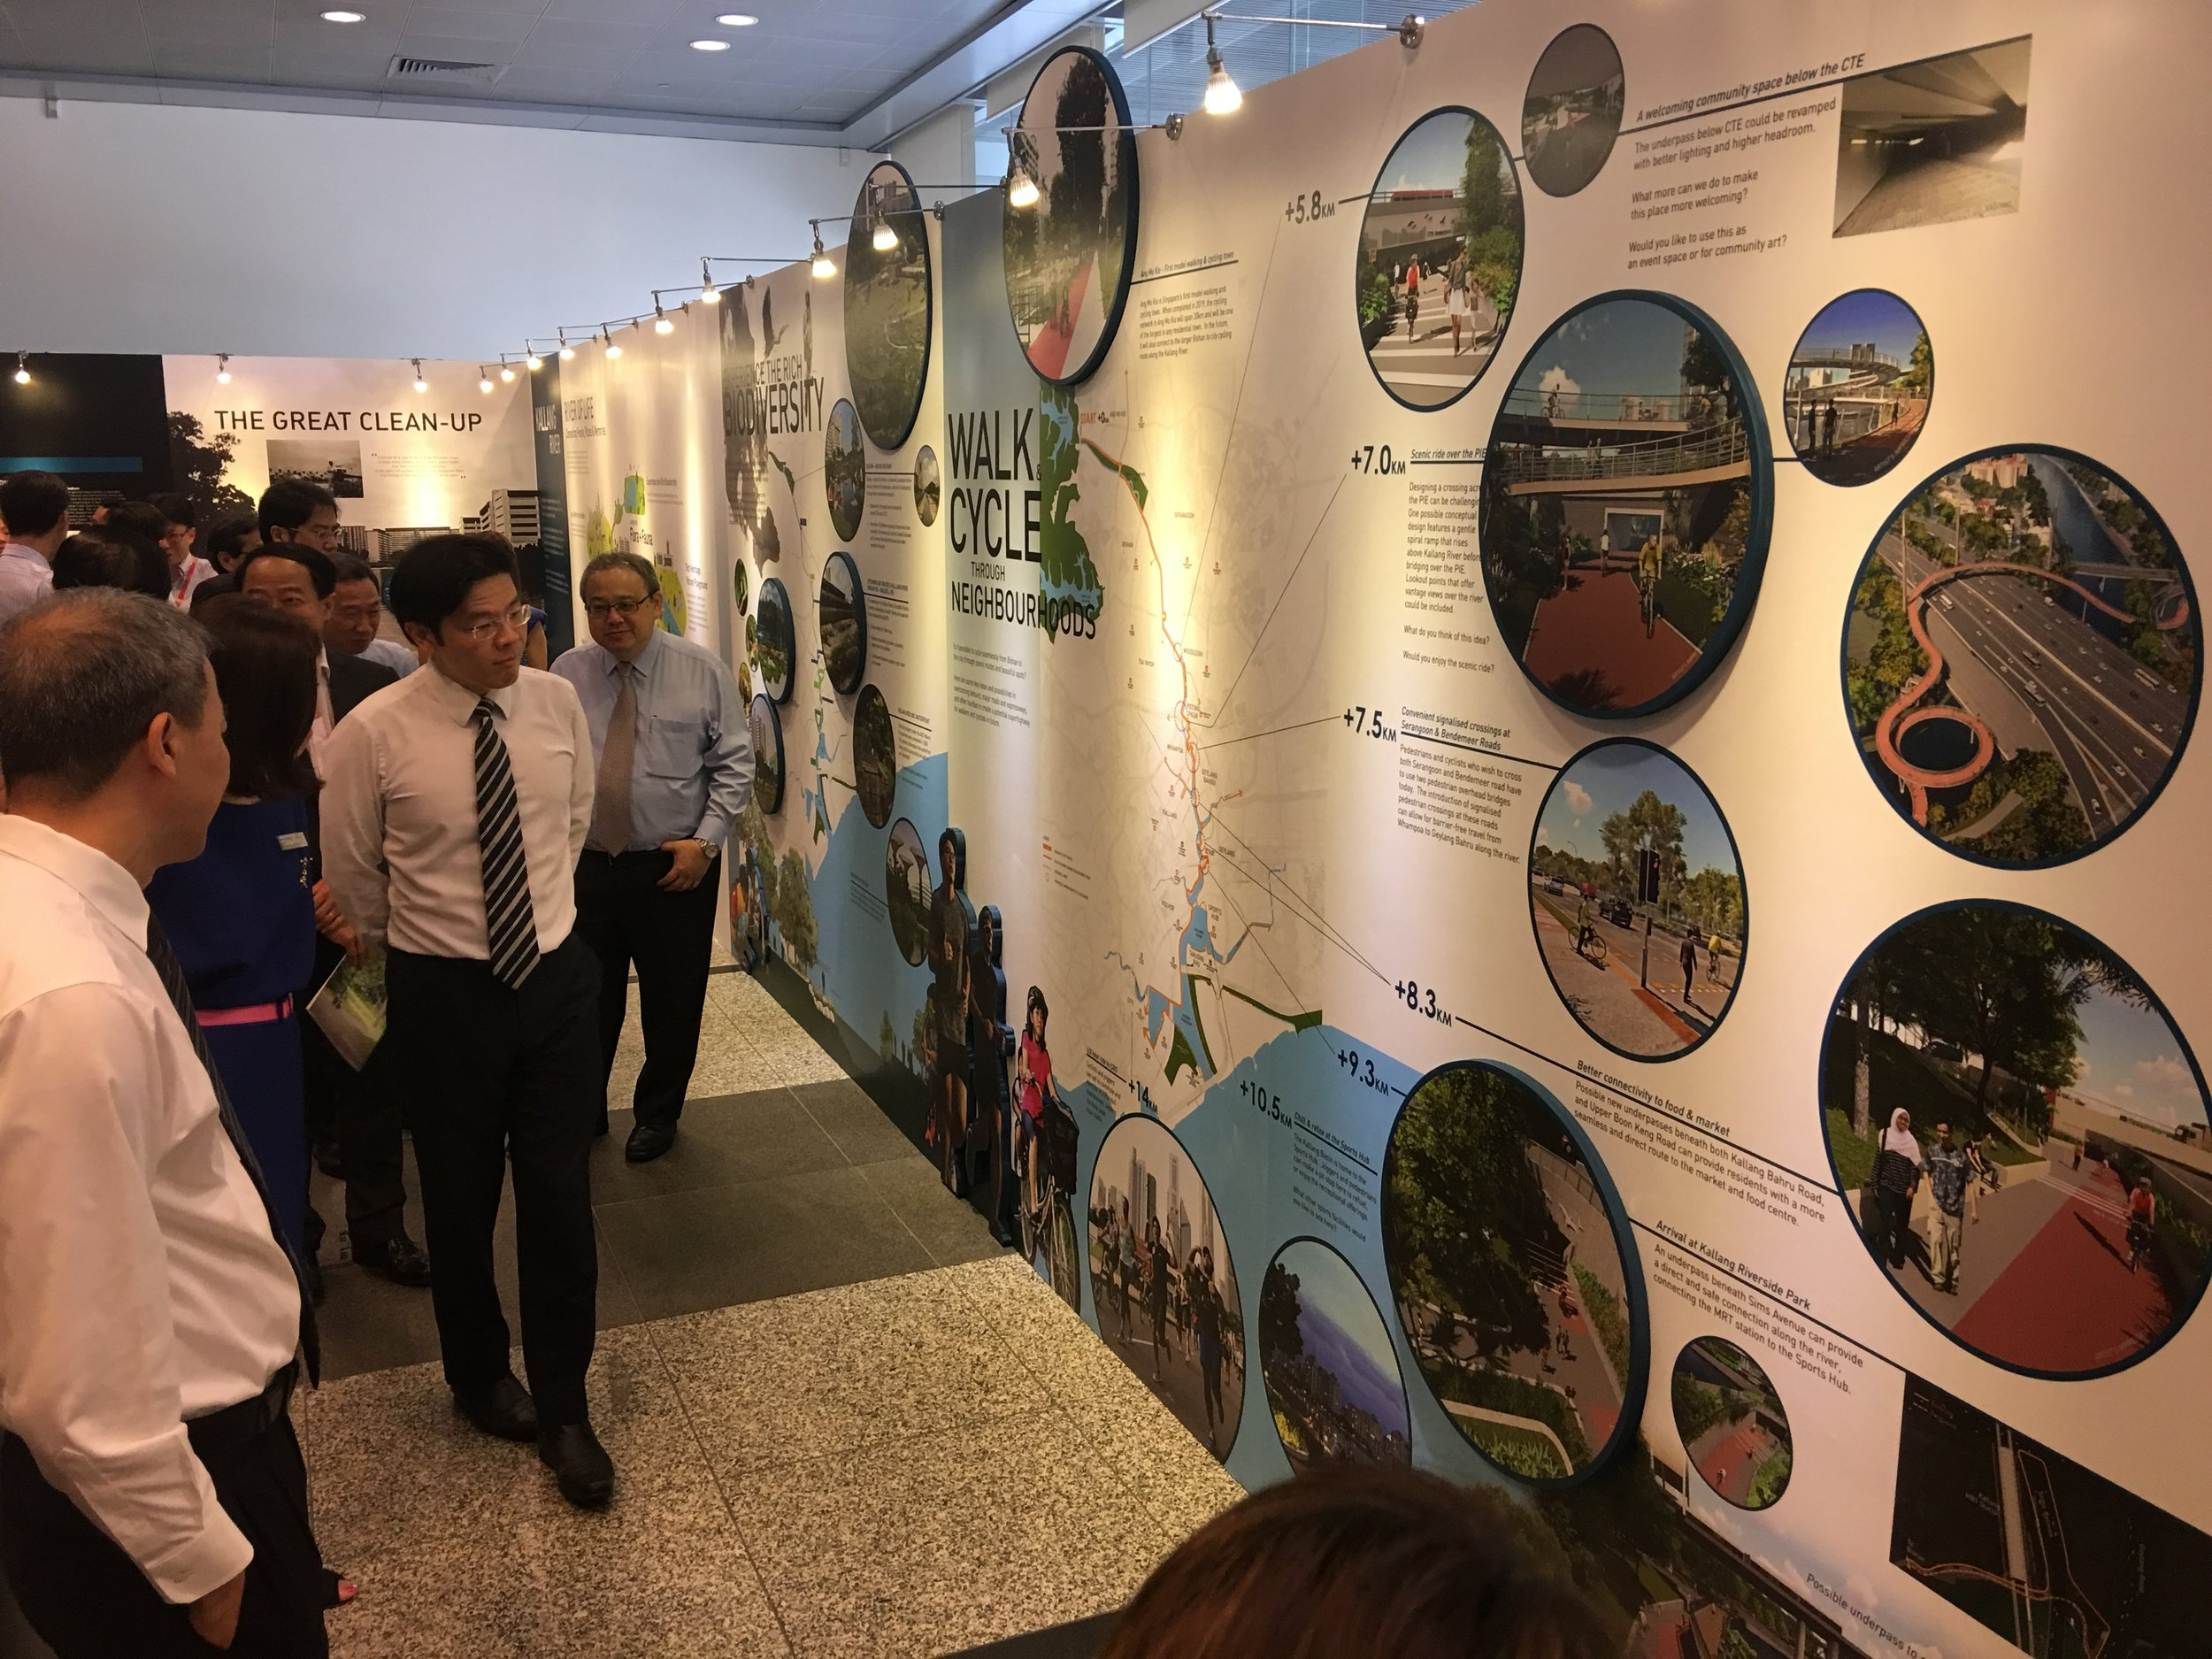 Minister for National Development views exhibition at URA Centre